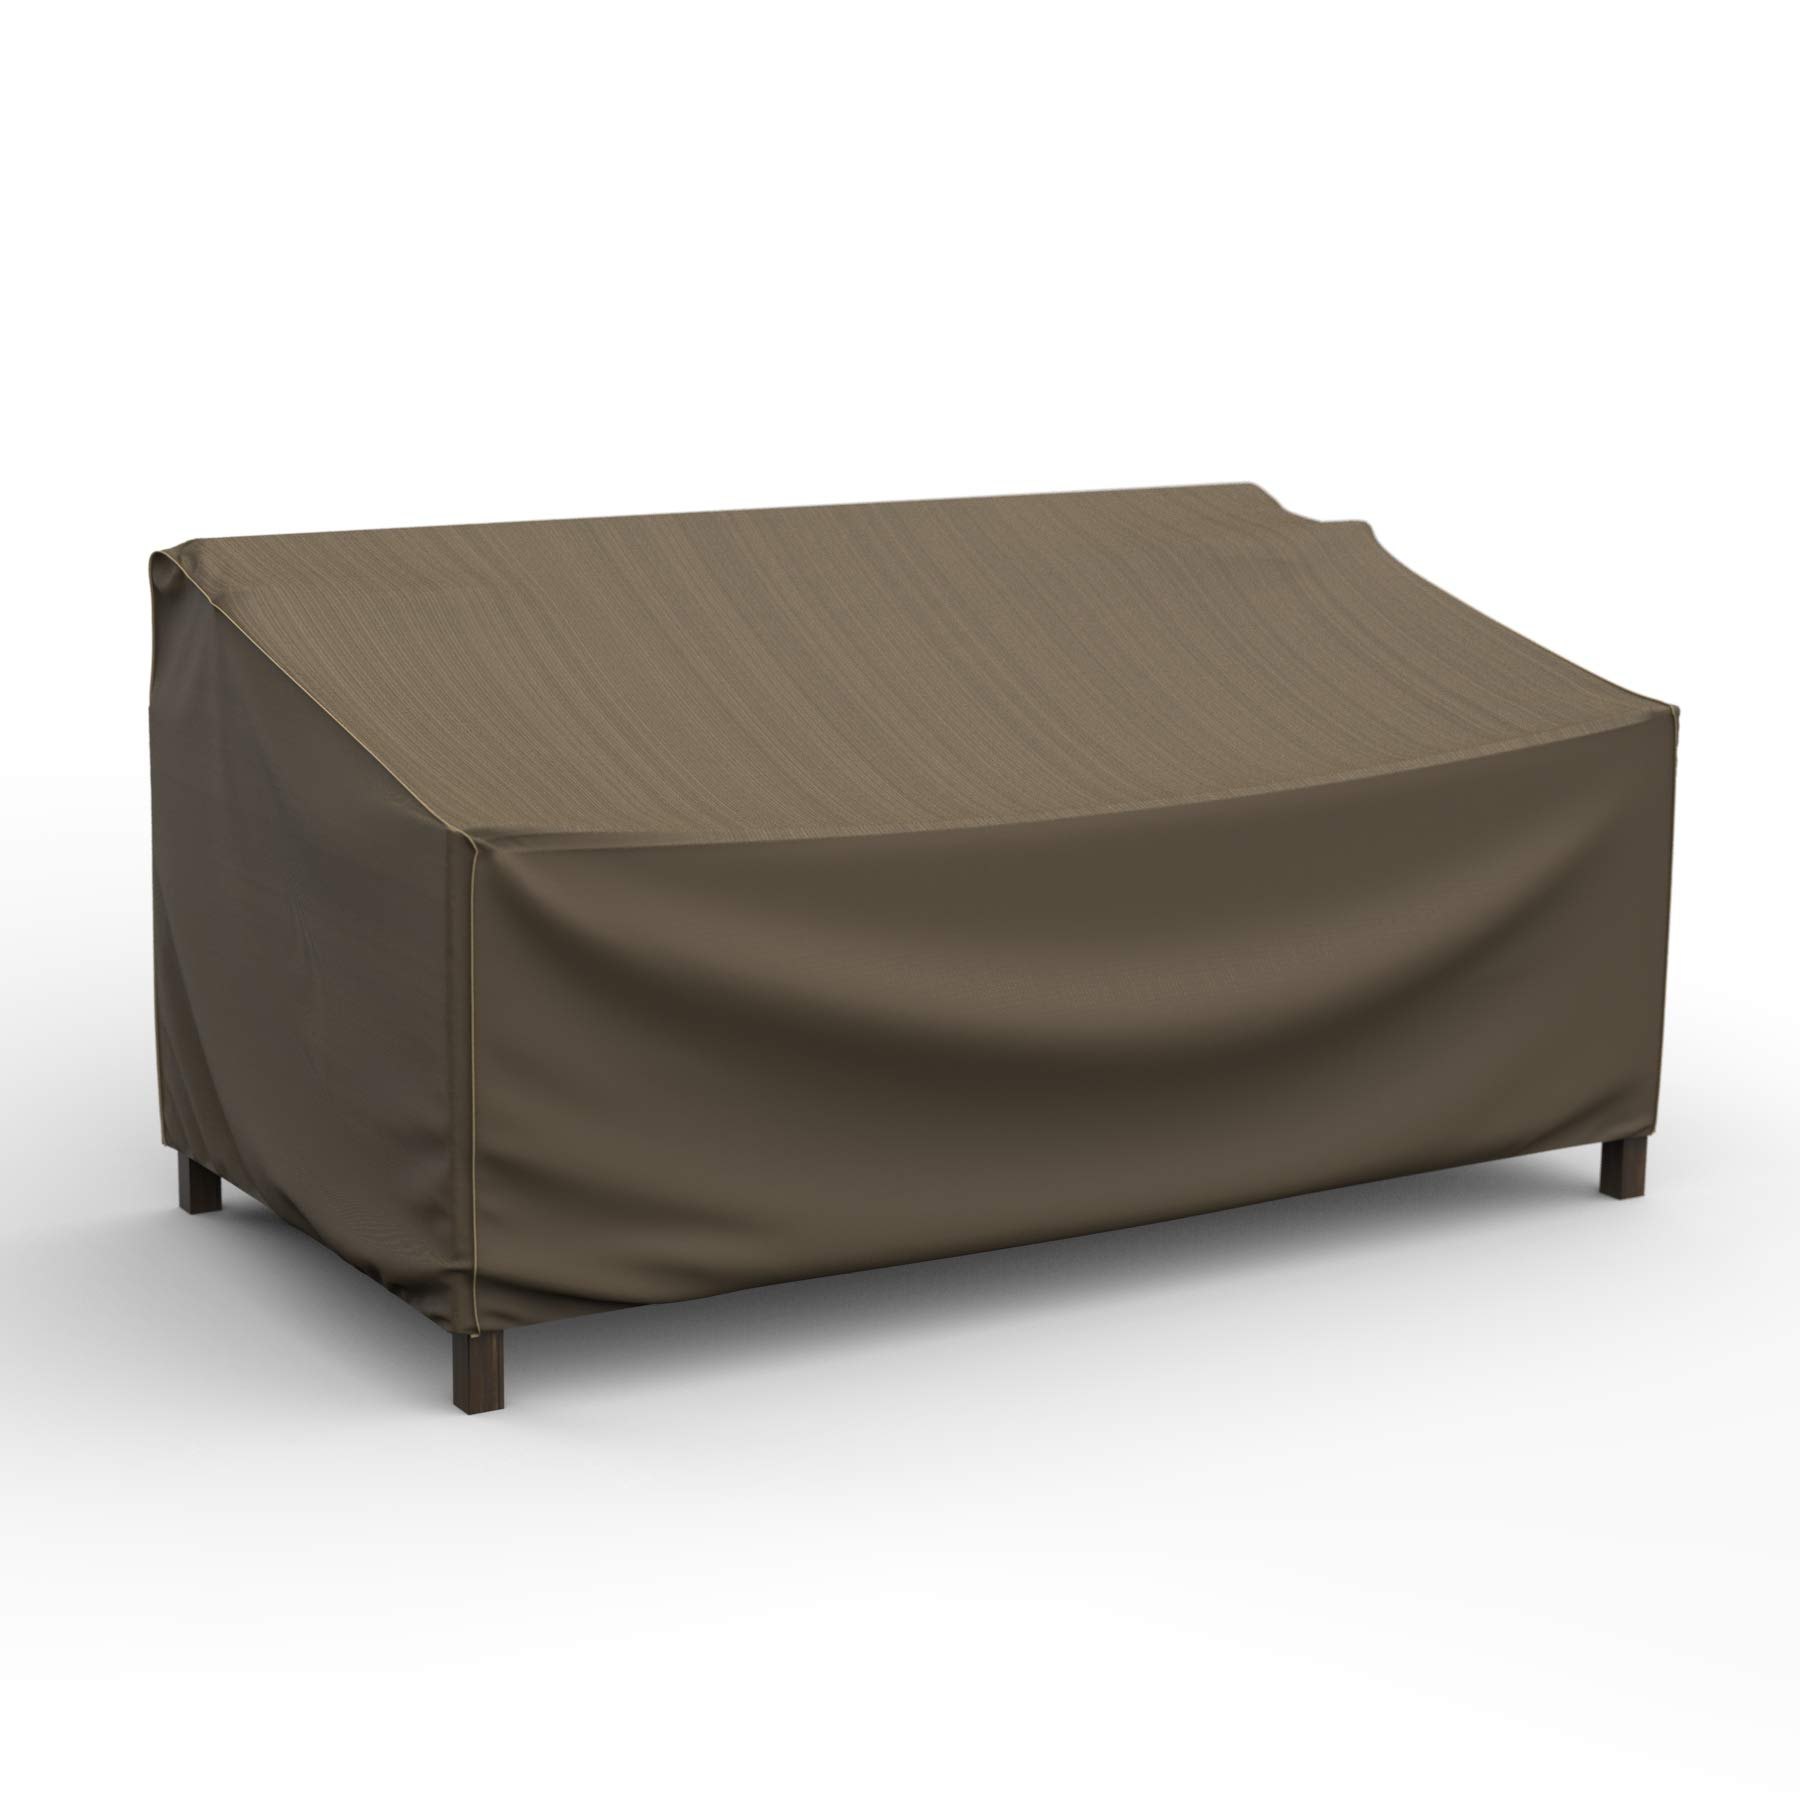 EmpireCovers NeverWet Platinum Outdoor Patio Loveseat Cover, Large (Black and Tan Weave)